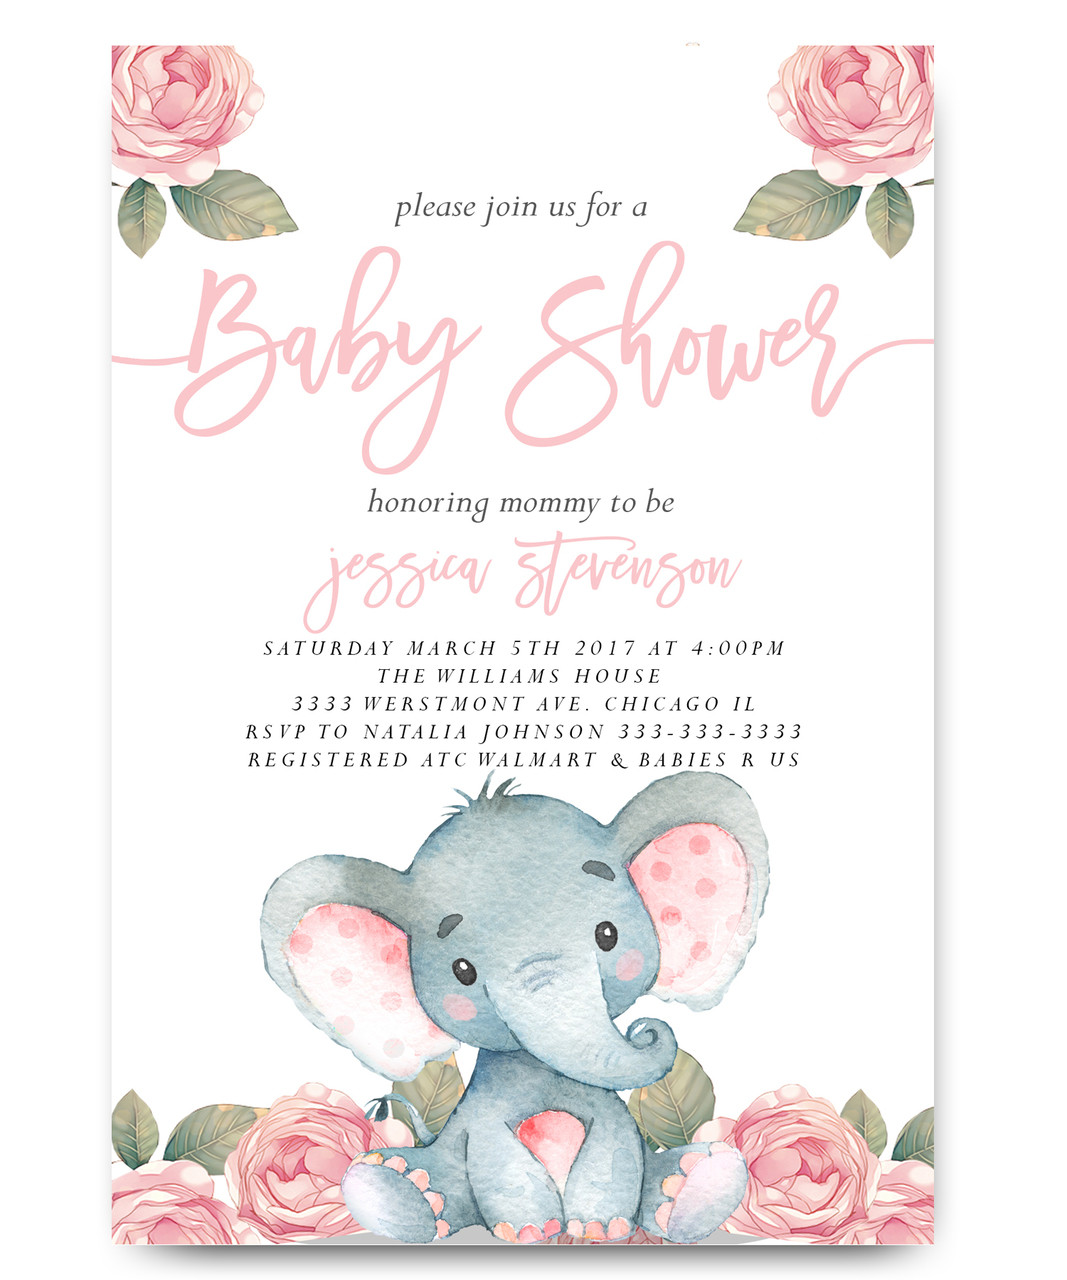 Elephant baby shower invitation, pink floral elephant